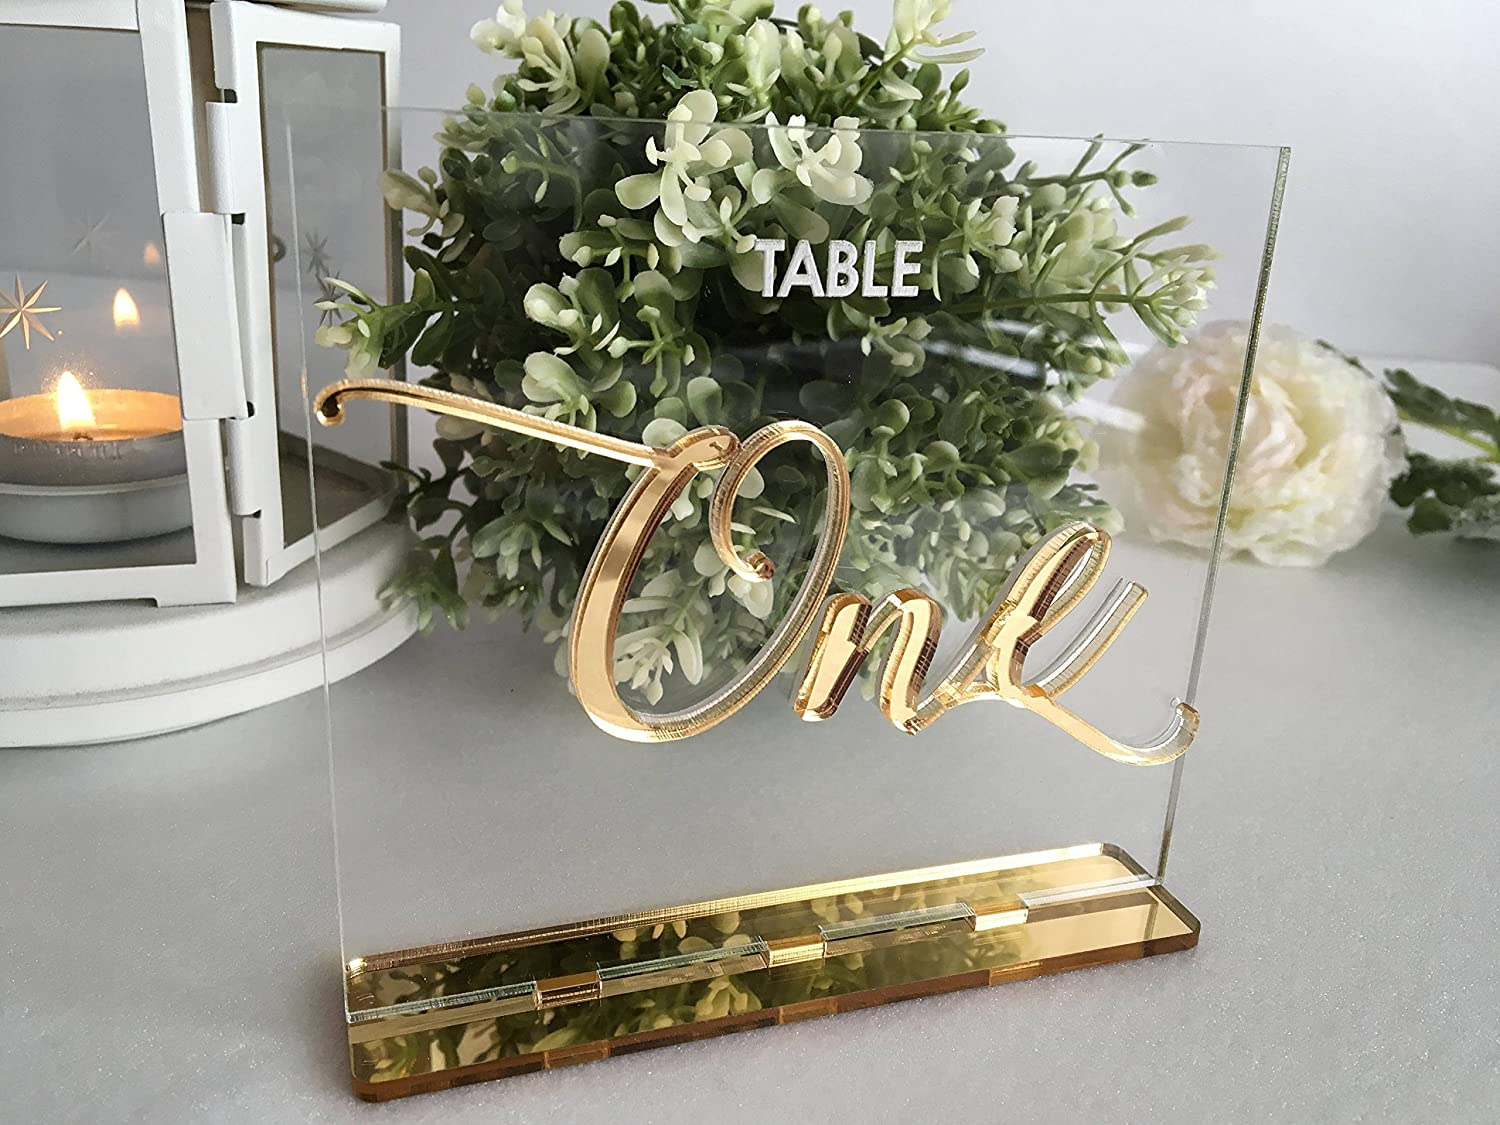 Personalised wedding table decorations Table markers